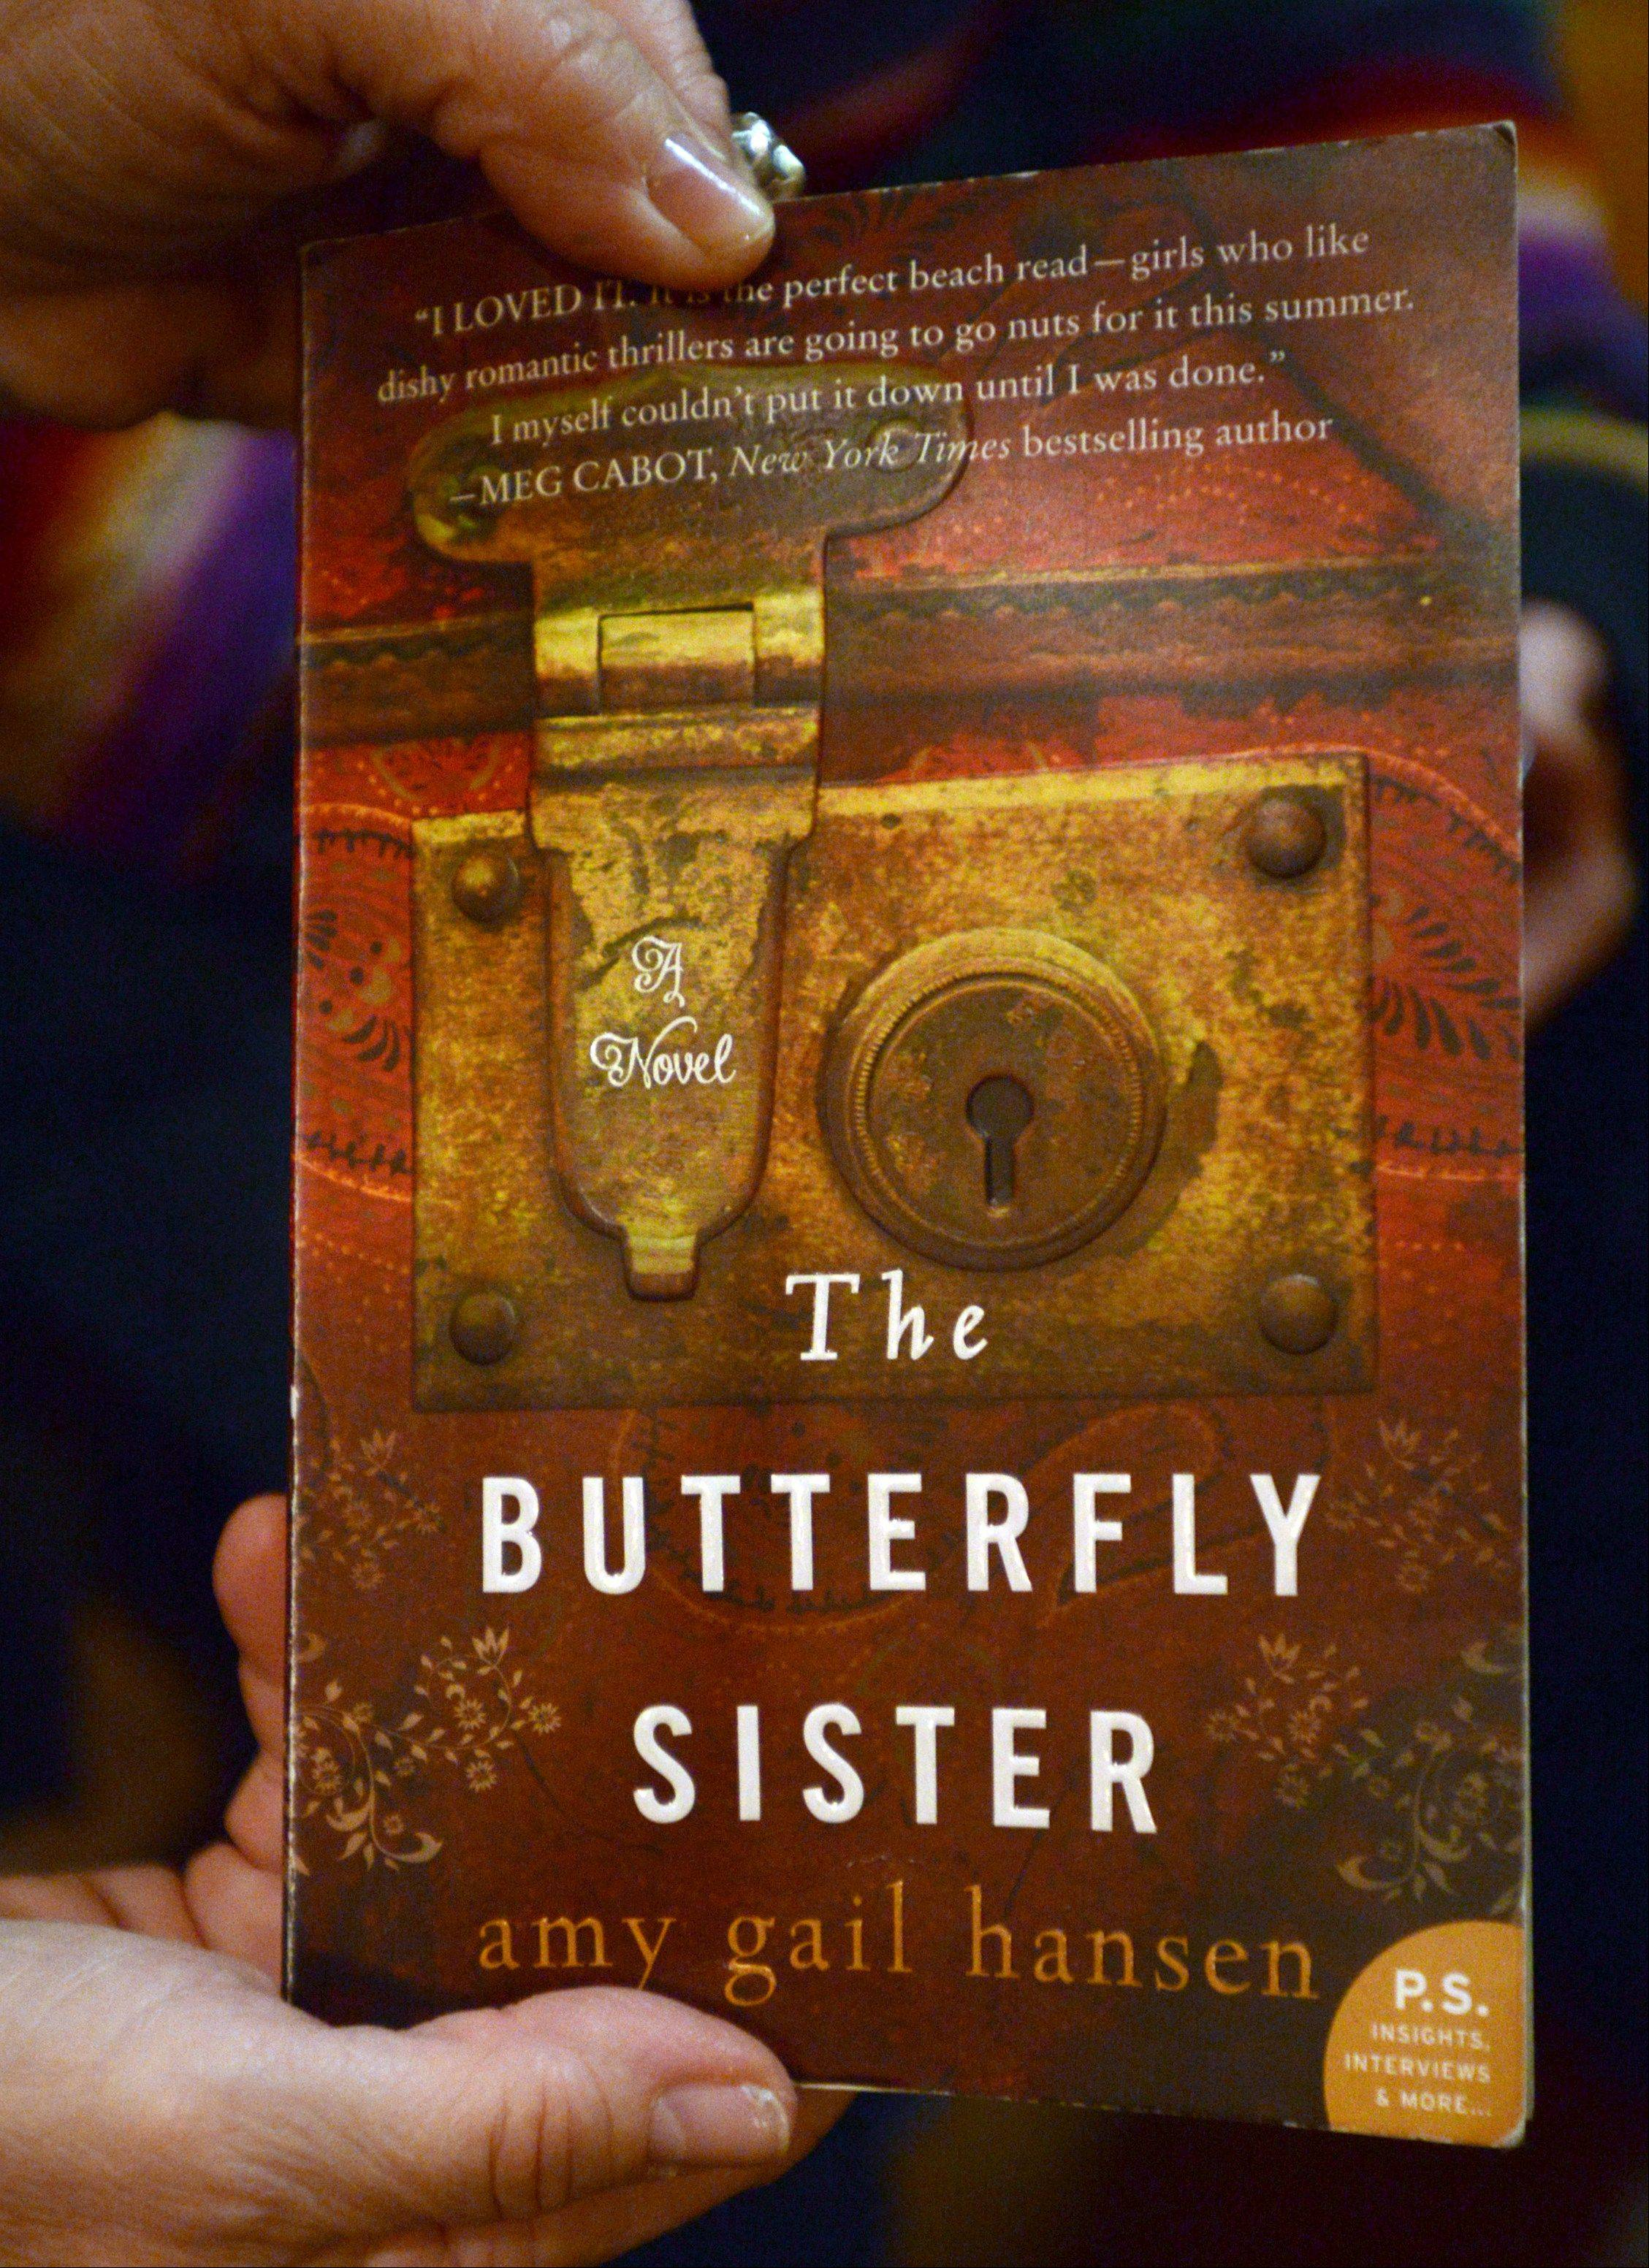 """The Butterfly Sister"" was published by HarperCollins."